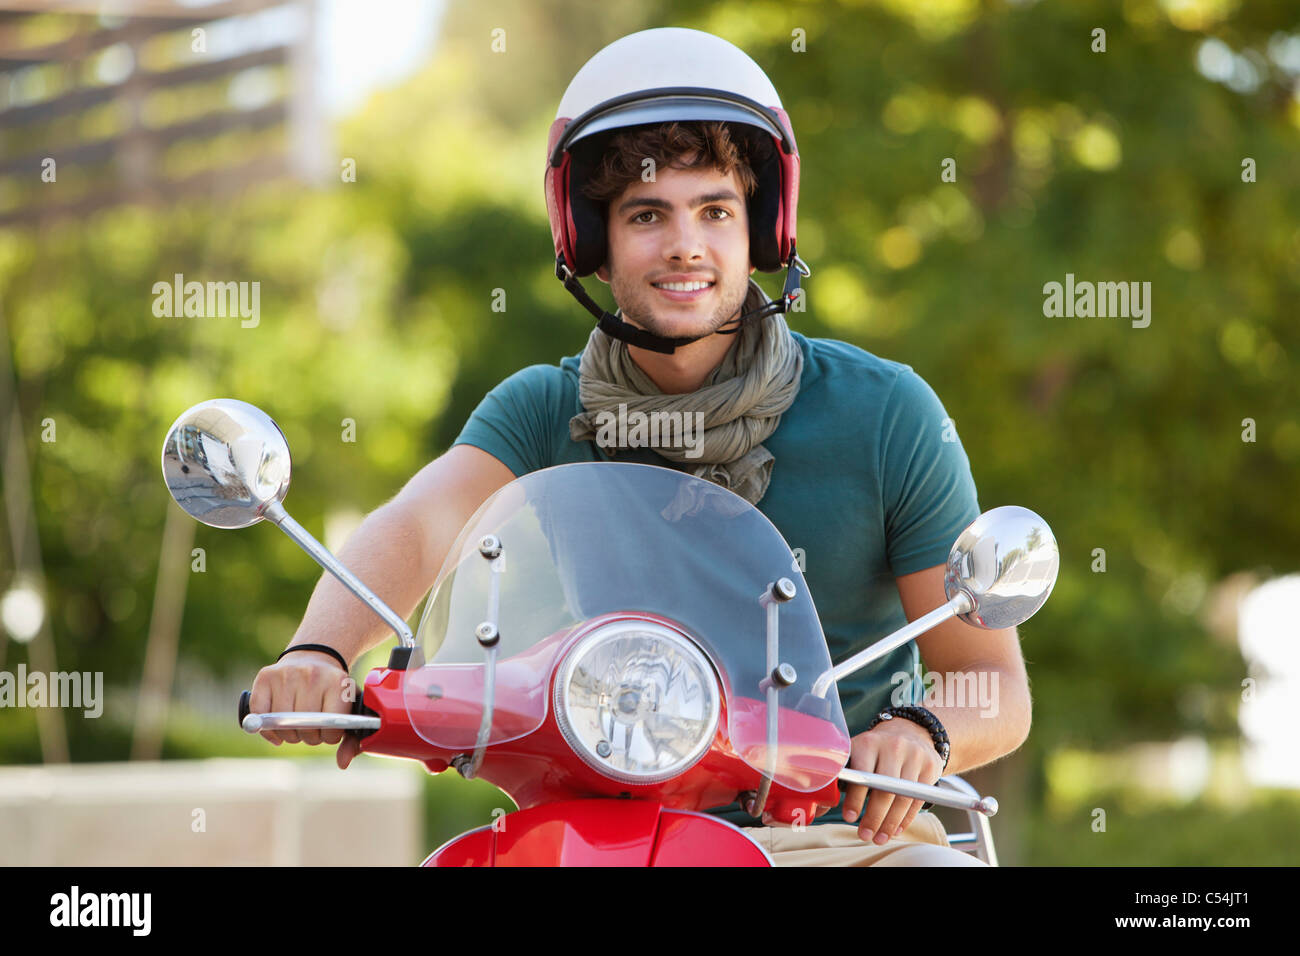 Man riding a scooter - Stock Image